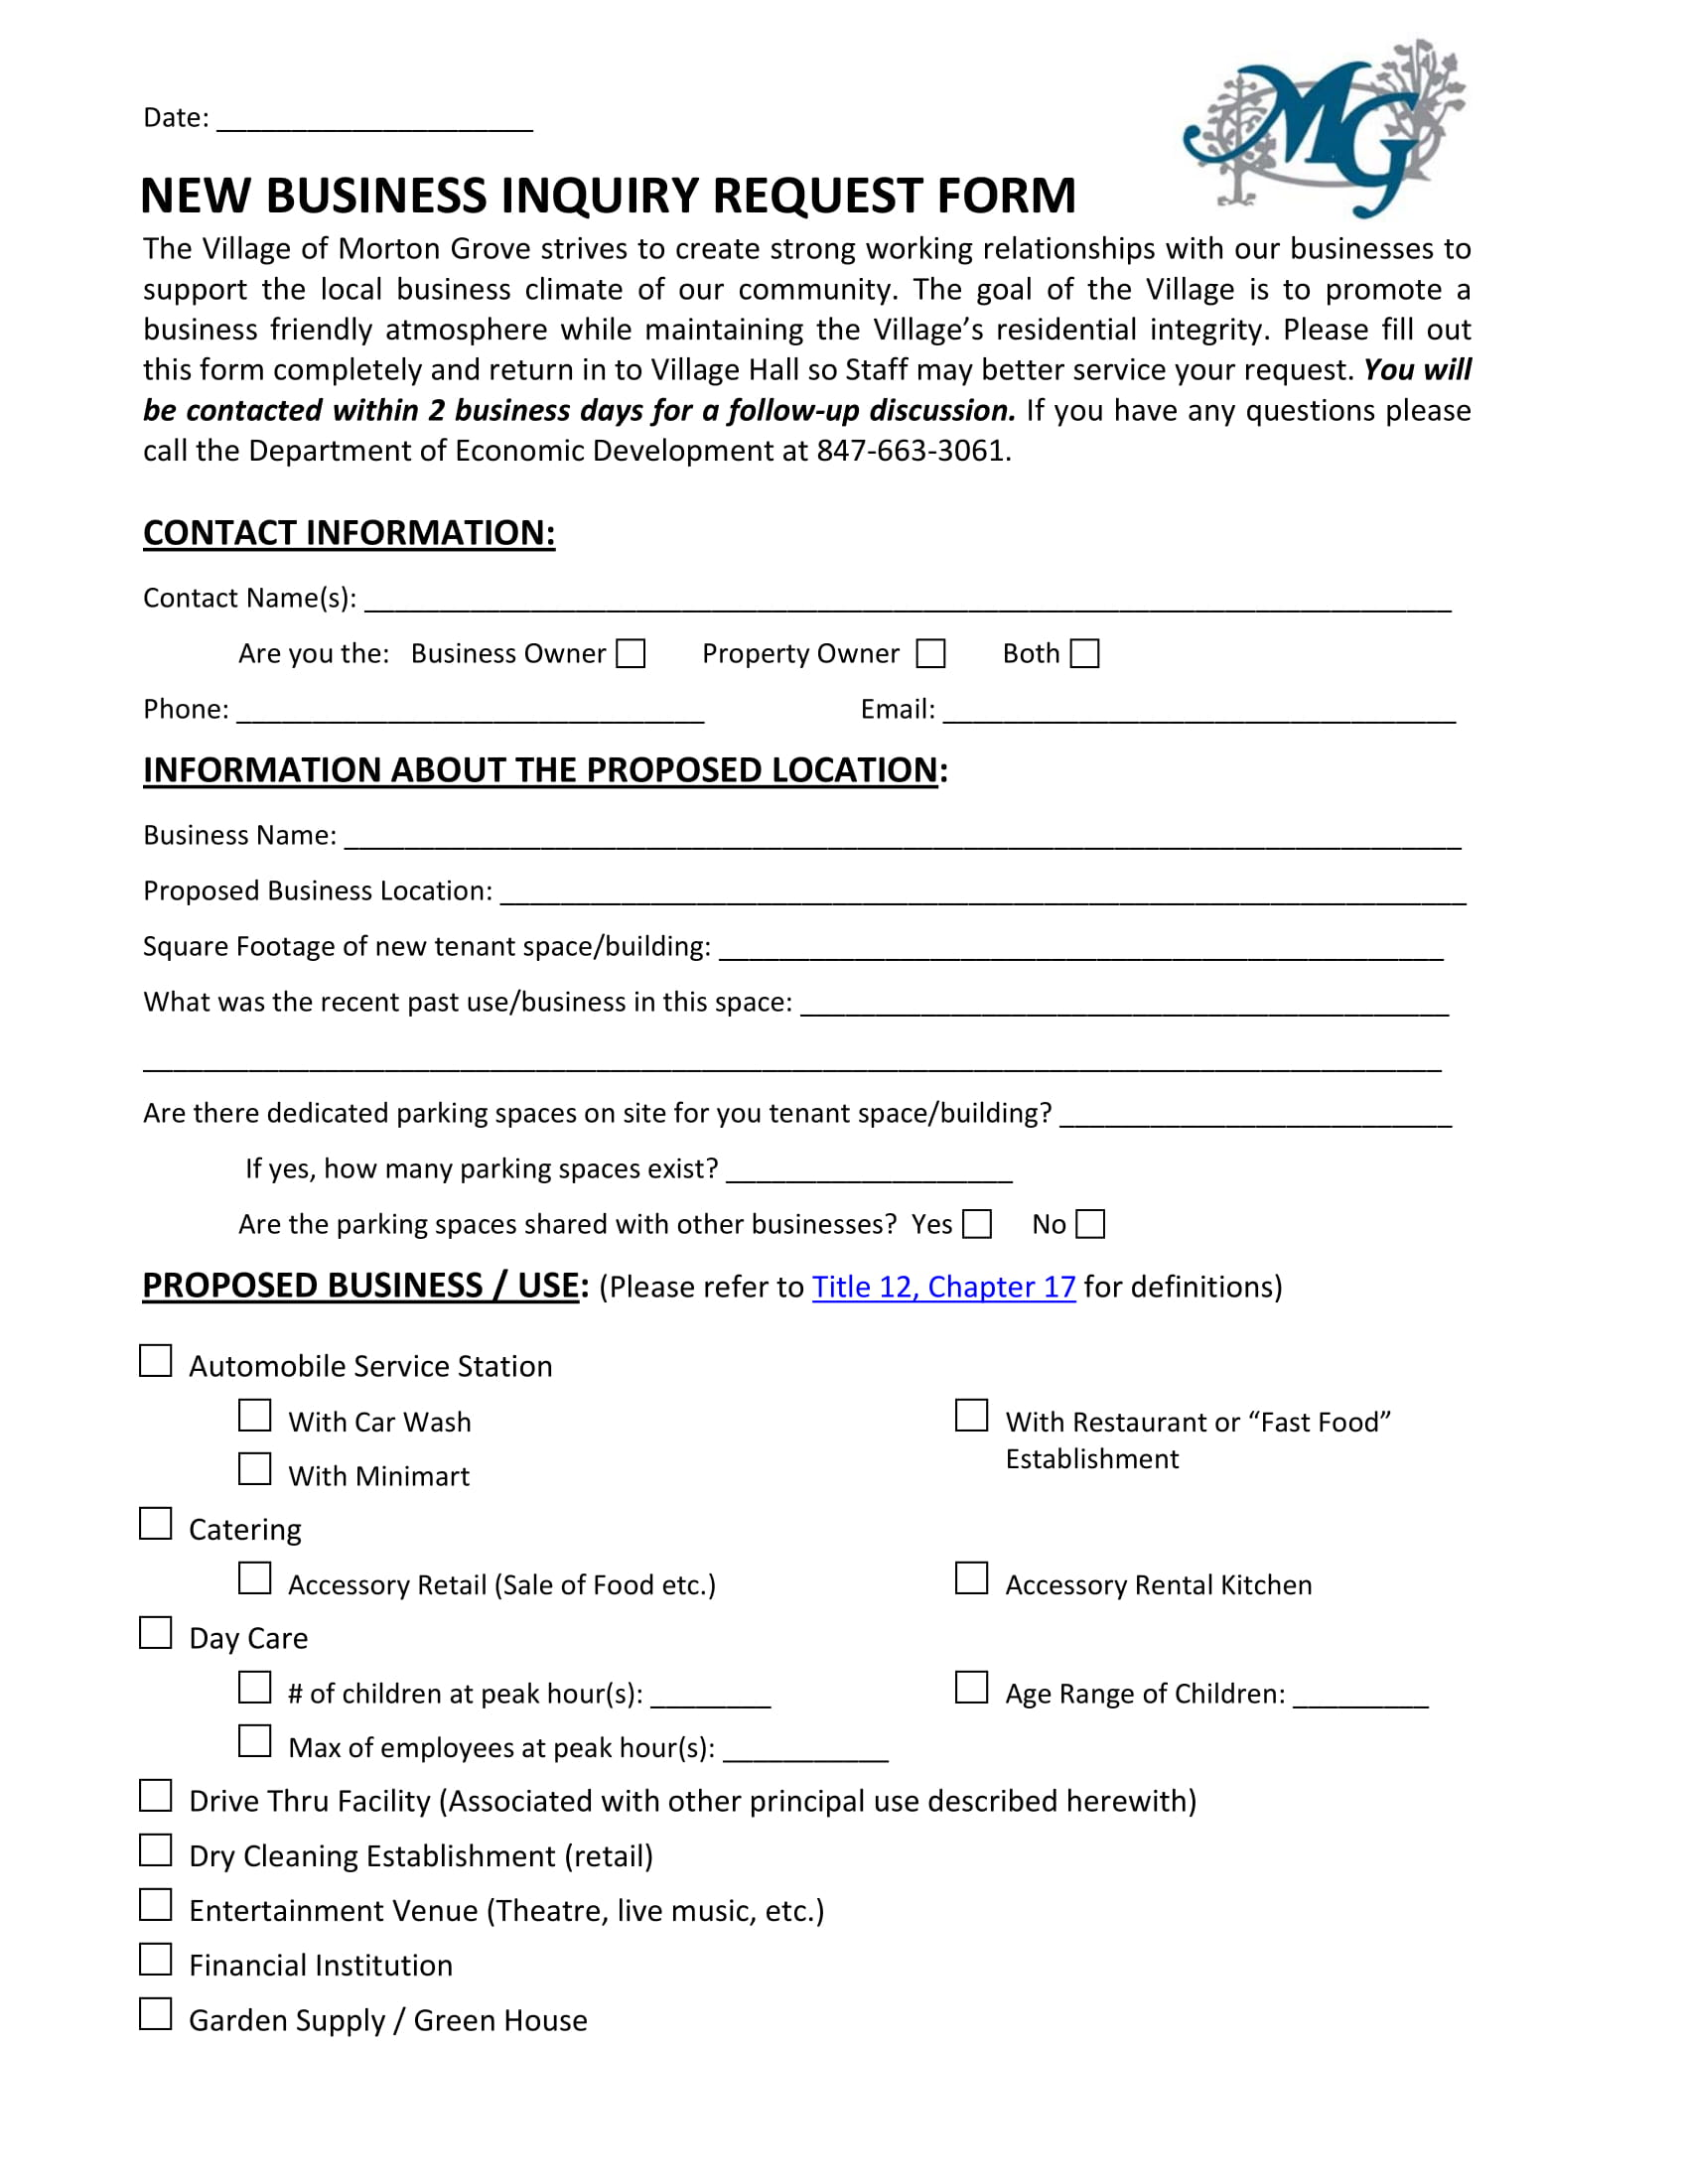 new restaurant business inquiry requisition form 1